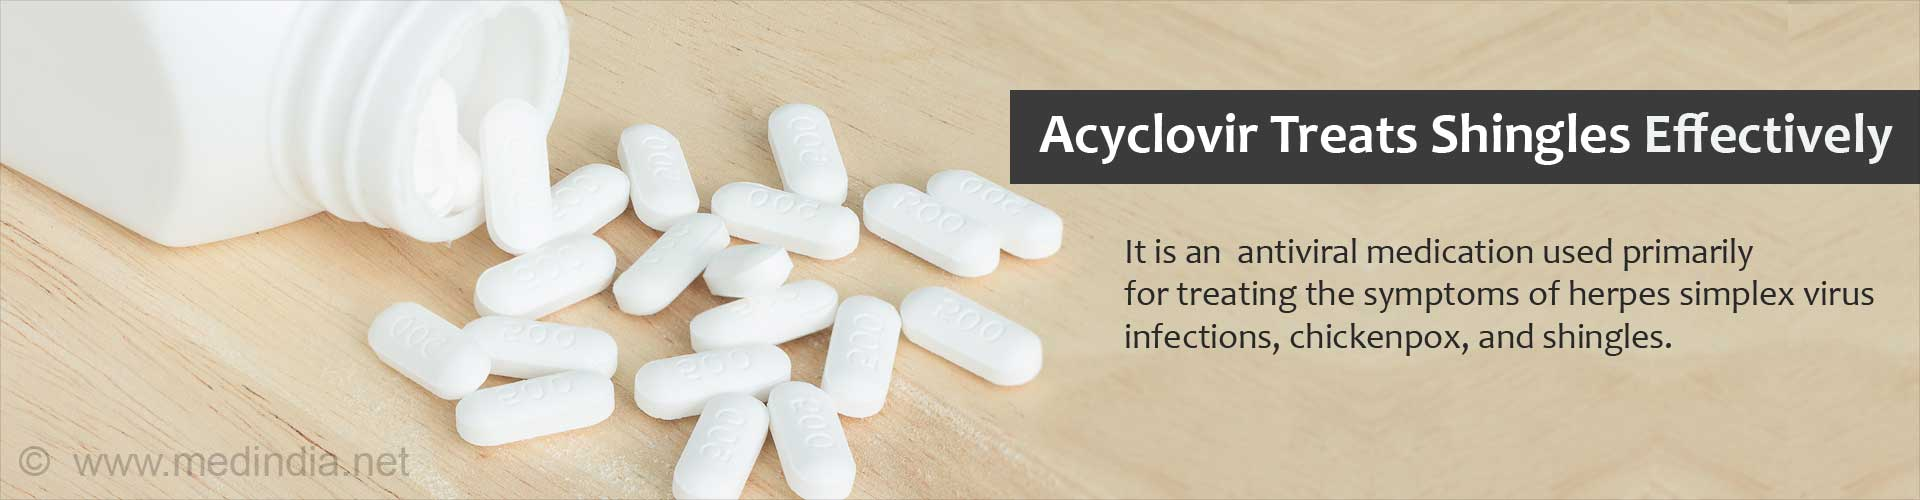 Acyclovir for the Treatment of Shingles